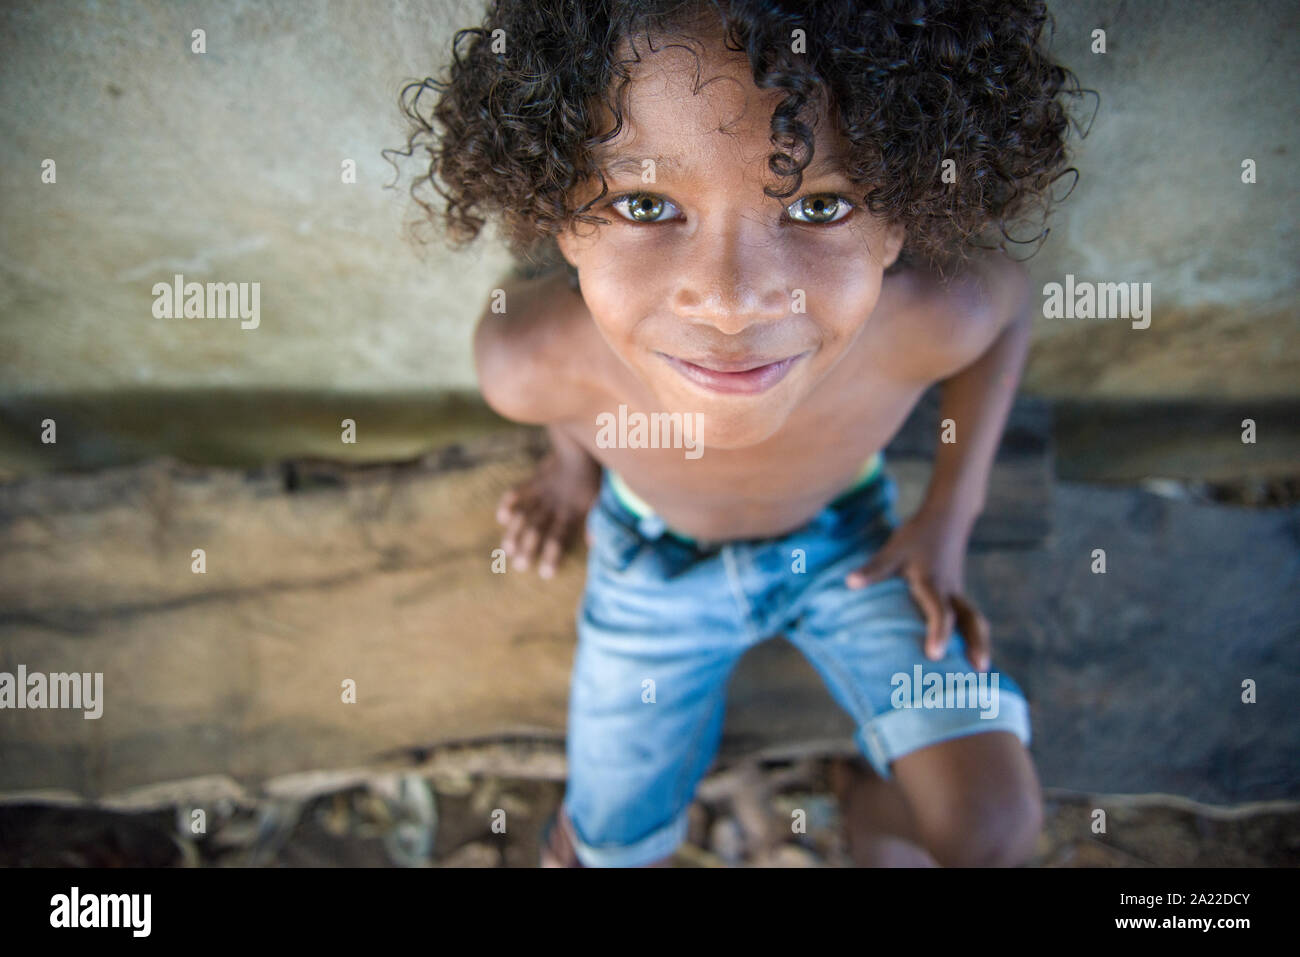 Boy With Green Eyes High Resolution Stock Photography And Images Alamy